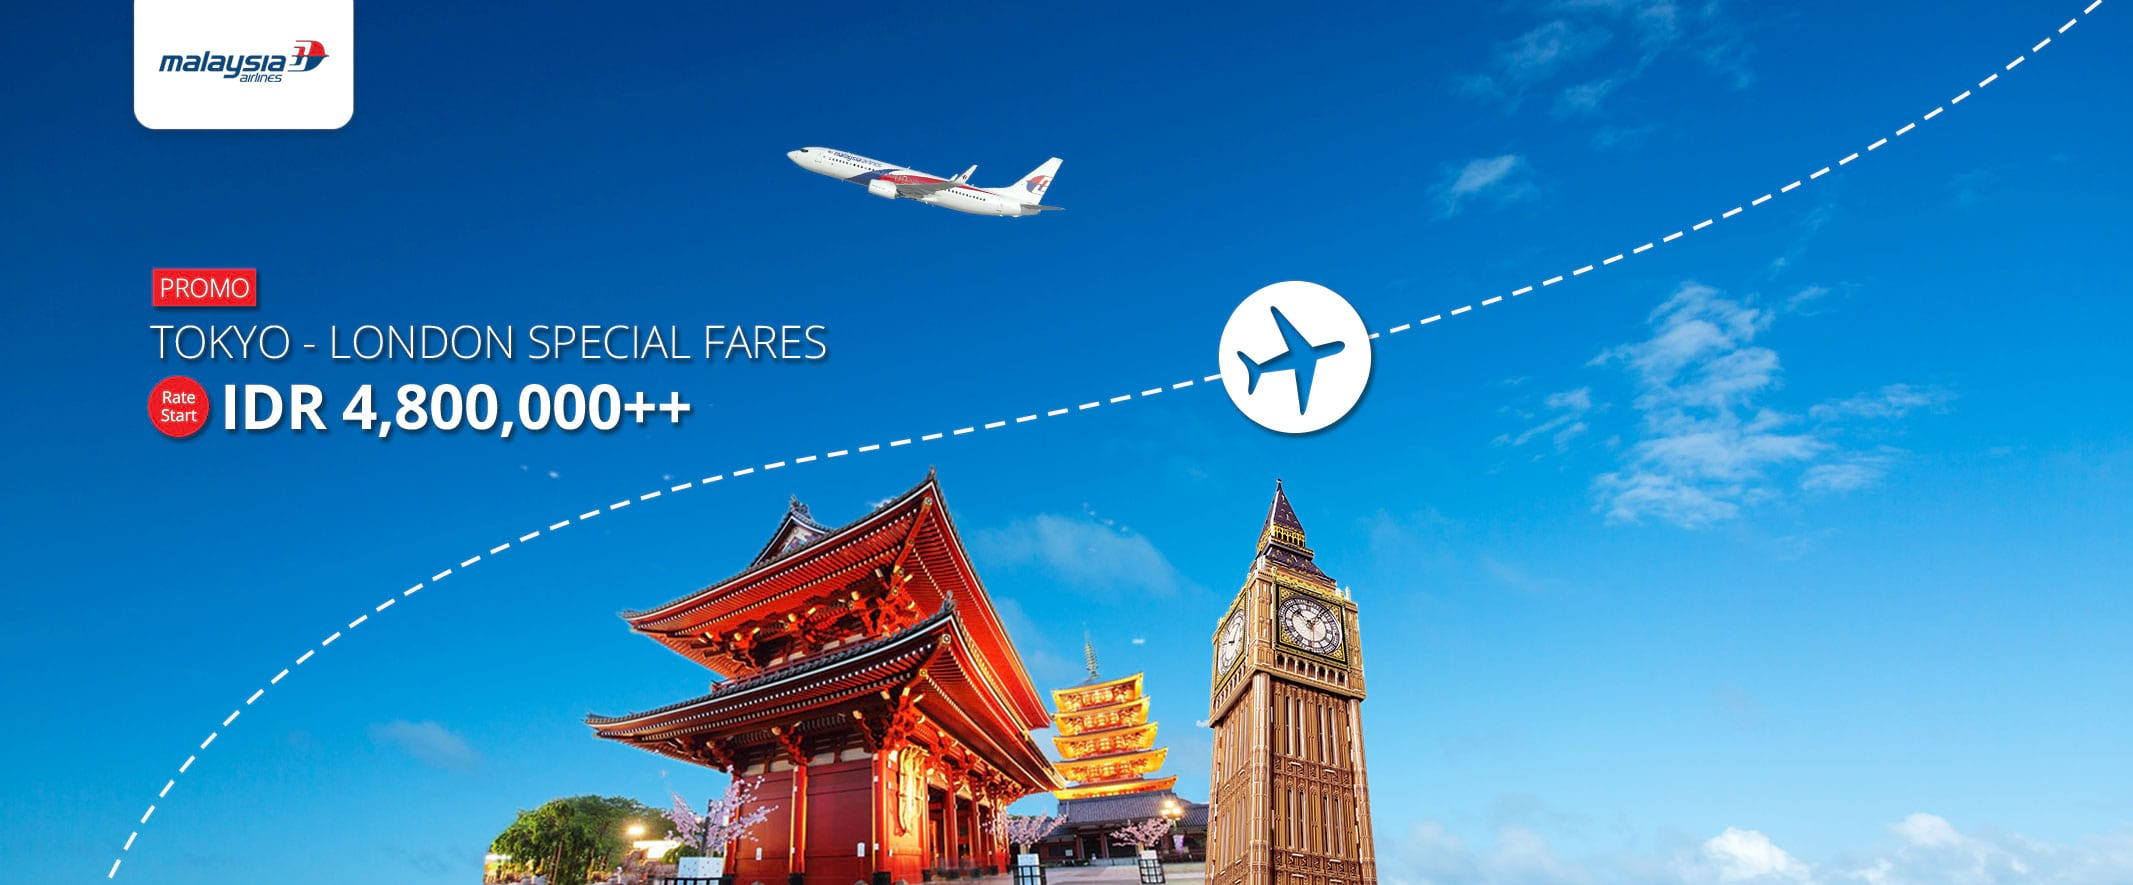 malaysia airlines promotion strategies Take off to asia and beyond for less with these malaysia airlines coupon codes malaysia airlines is a major provider of flights throughout asia, the middle east and oceania it is a member of the.